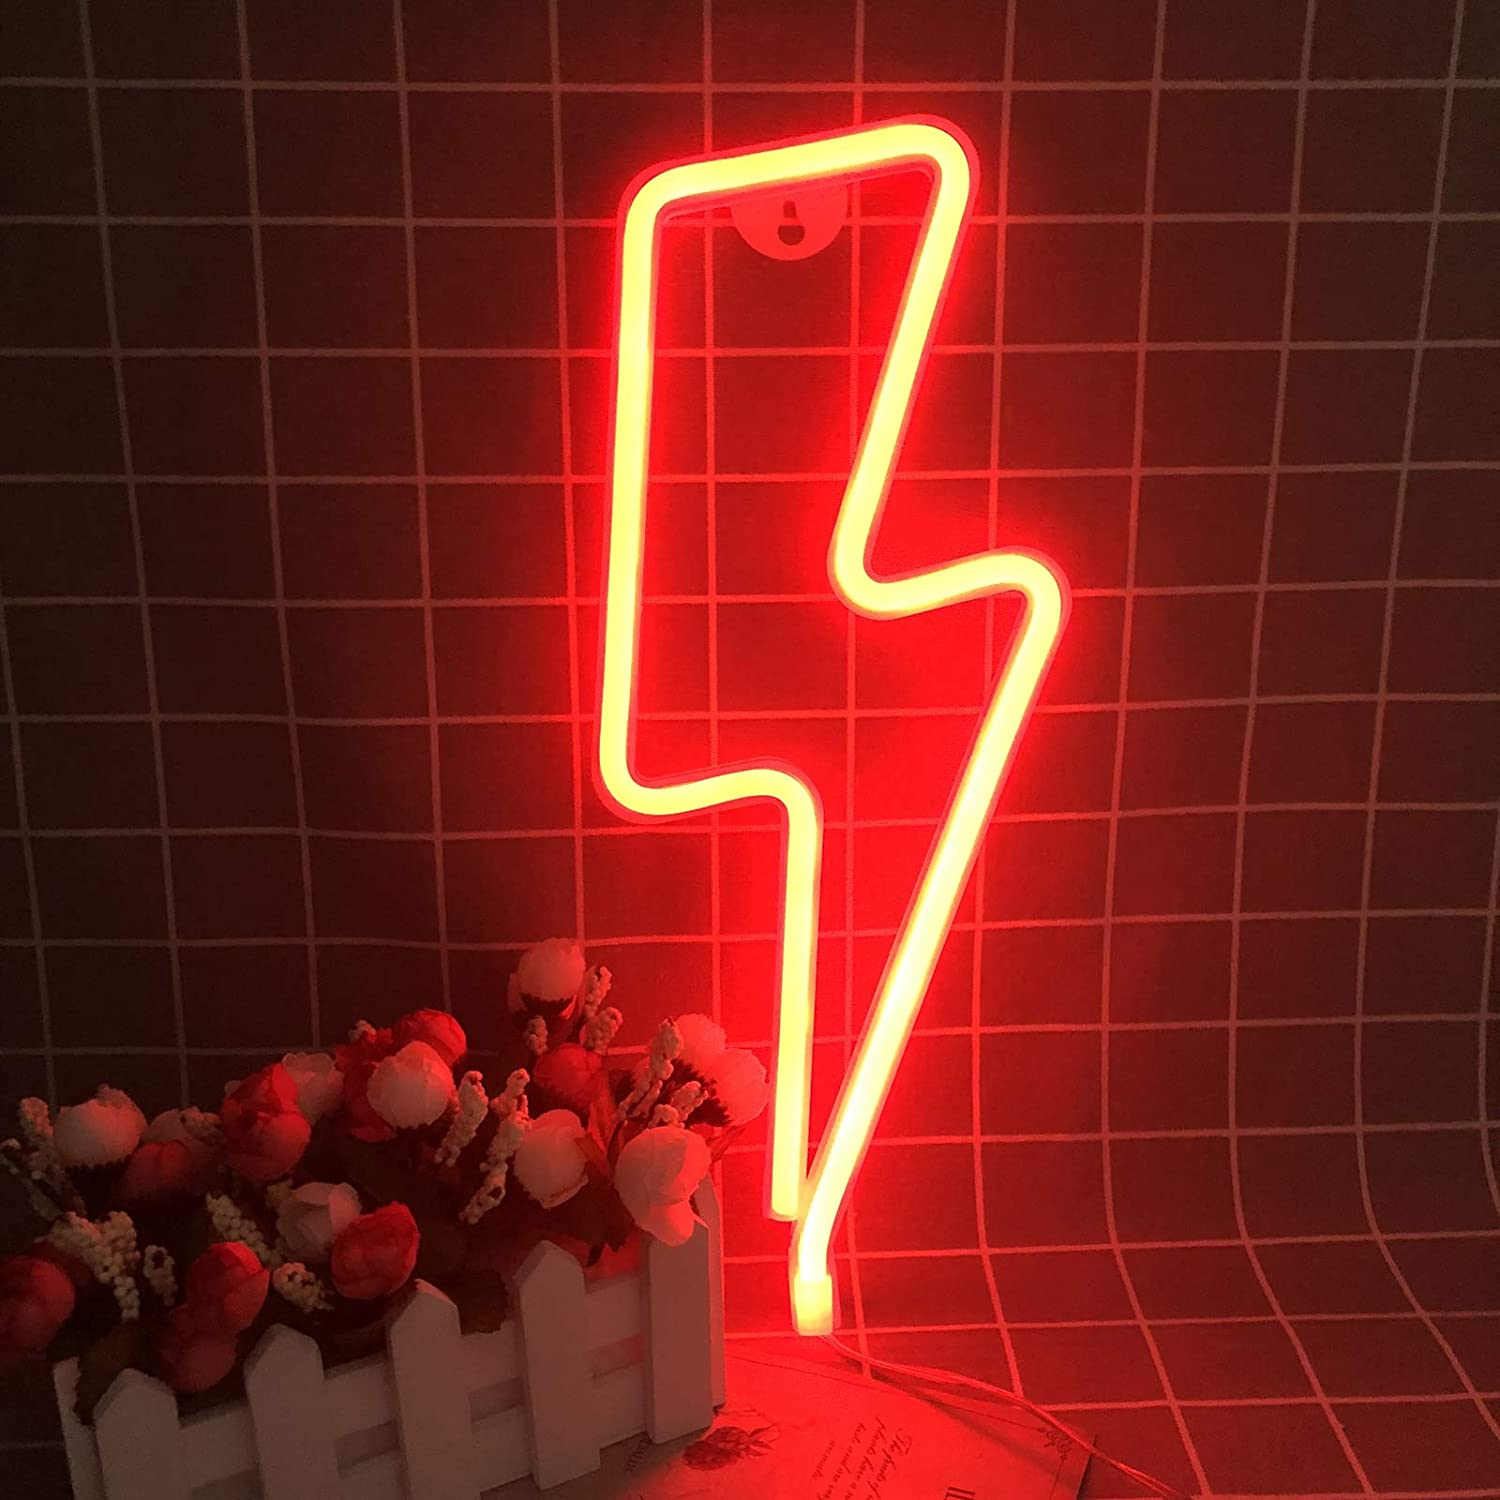 Red Neon Night Light Led Lightning Signs Wall Decorative For Living Room Bar Decor Birthday Party Halloween Amazon Com